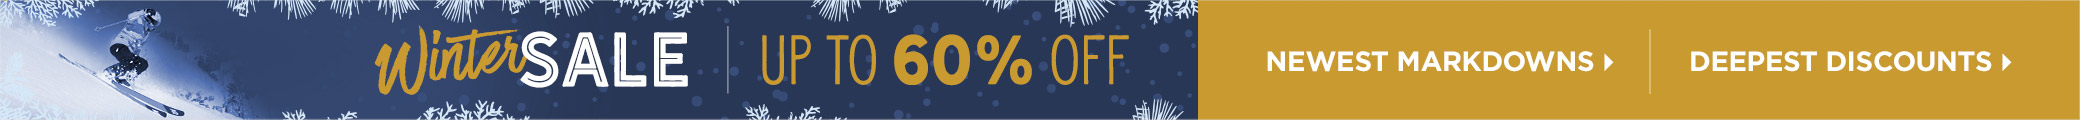 Winter Sale: Save up to 60%!